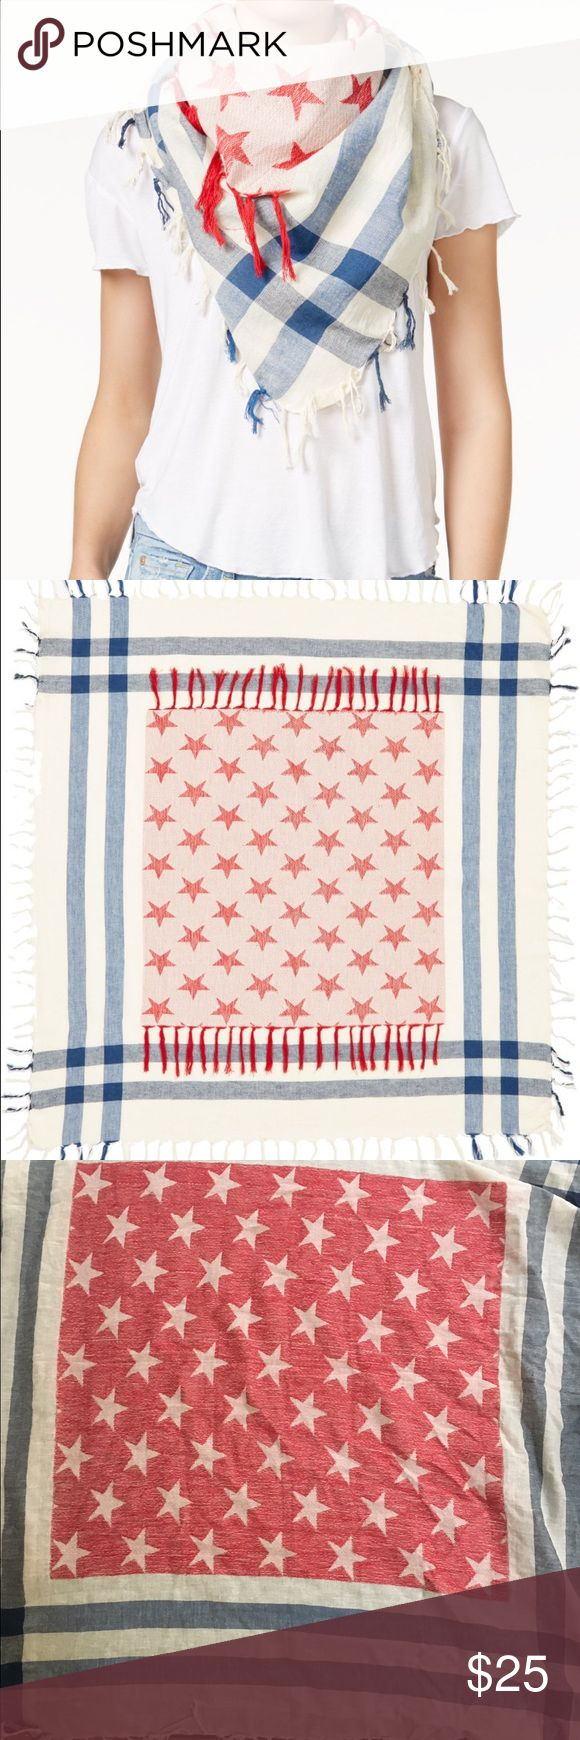 "Collection Eighteen Stars and Stripes scarf!! Stars and stripes define the patriotic-chic style of a lightweight cotton scarf. 40"" square. 100% cotton. 0511116 Collection XIIX Accessories Scarves & Wraps"